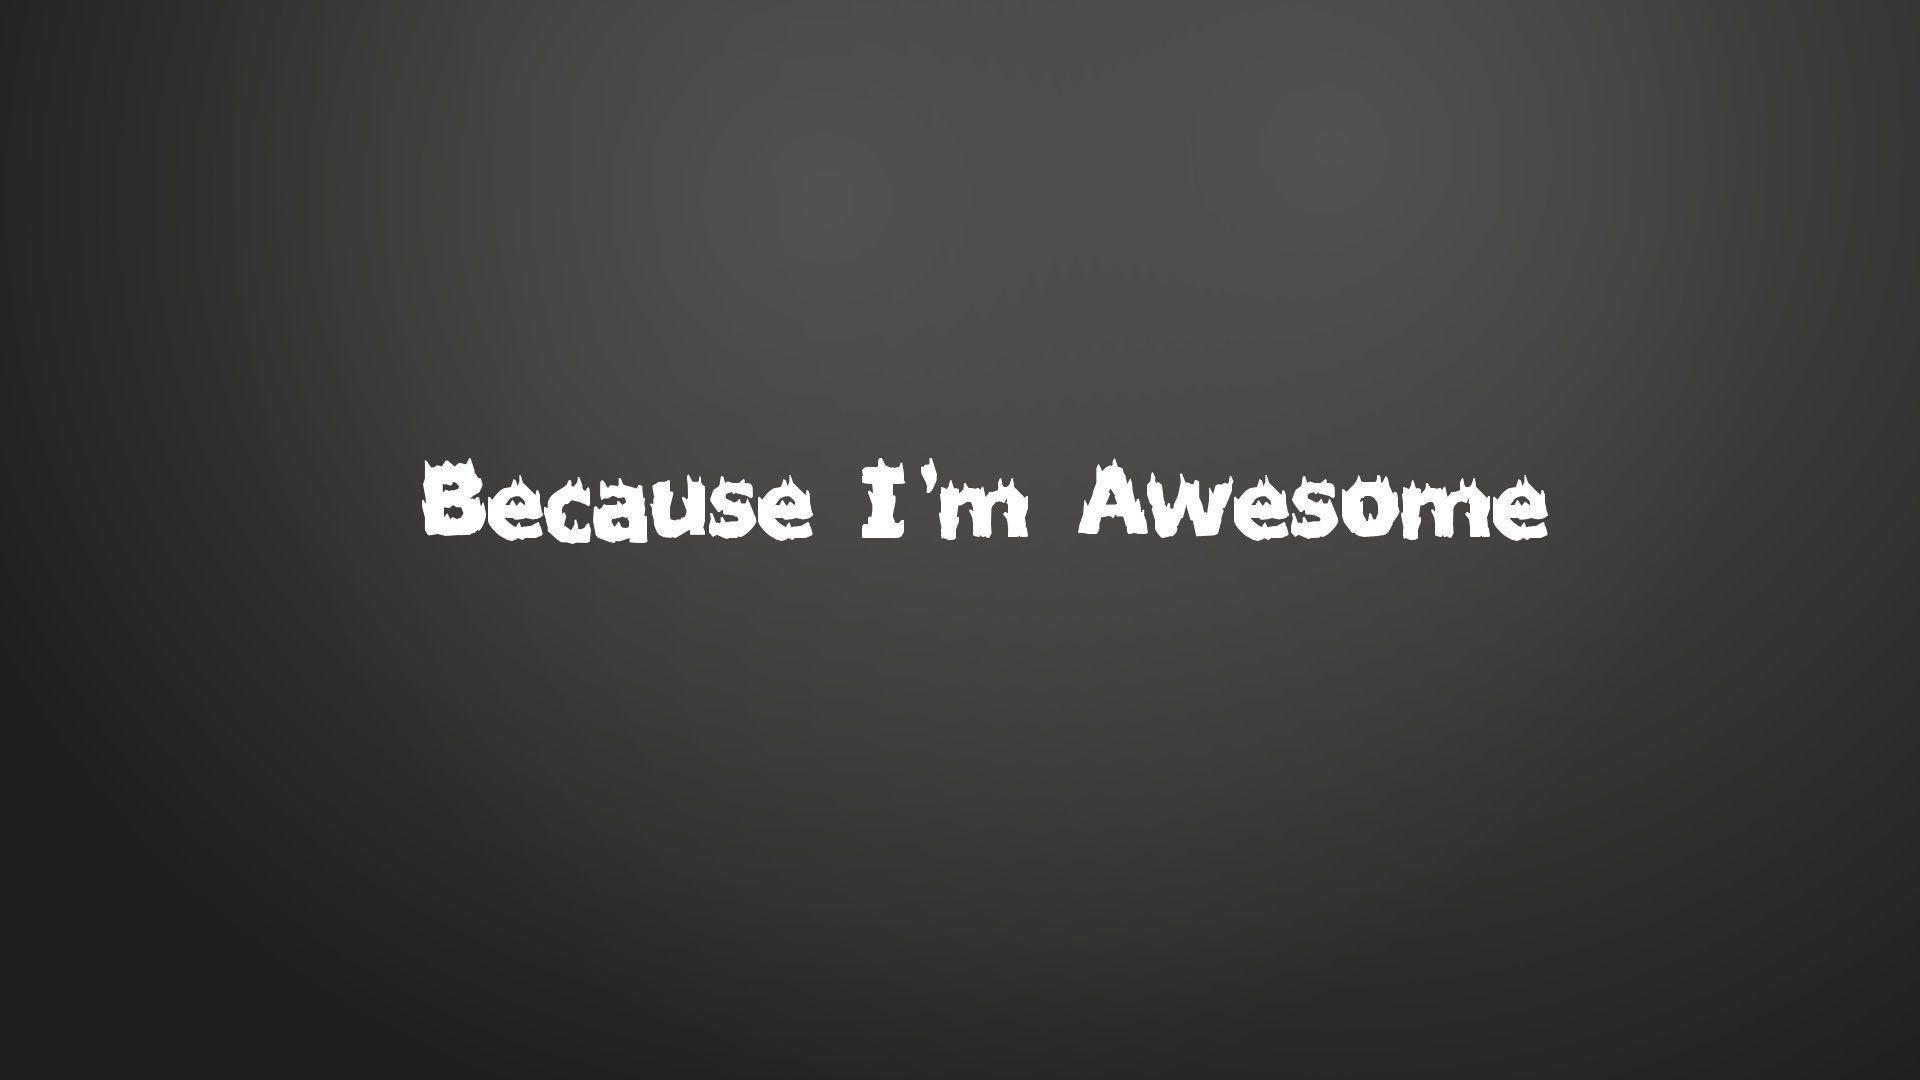 am awesome wallpaper - photo #4